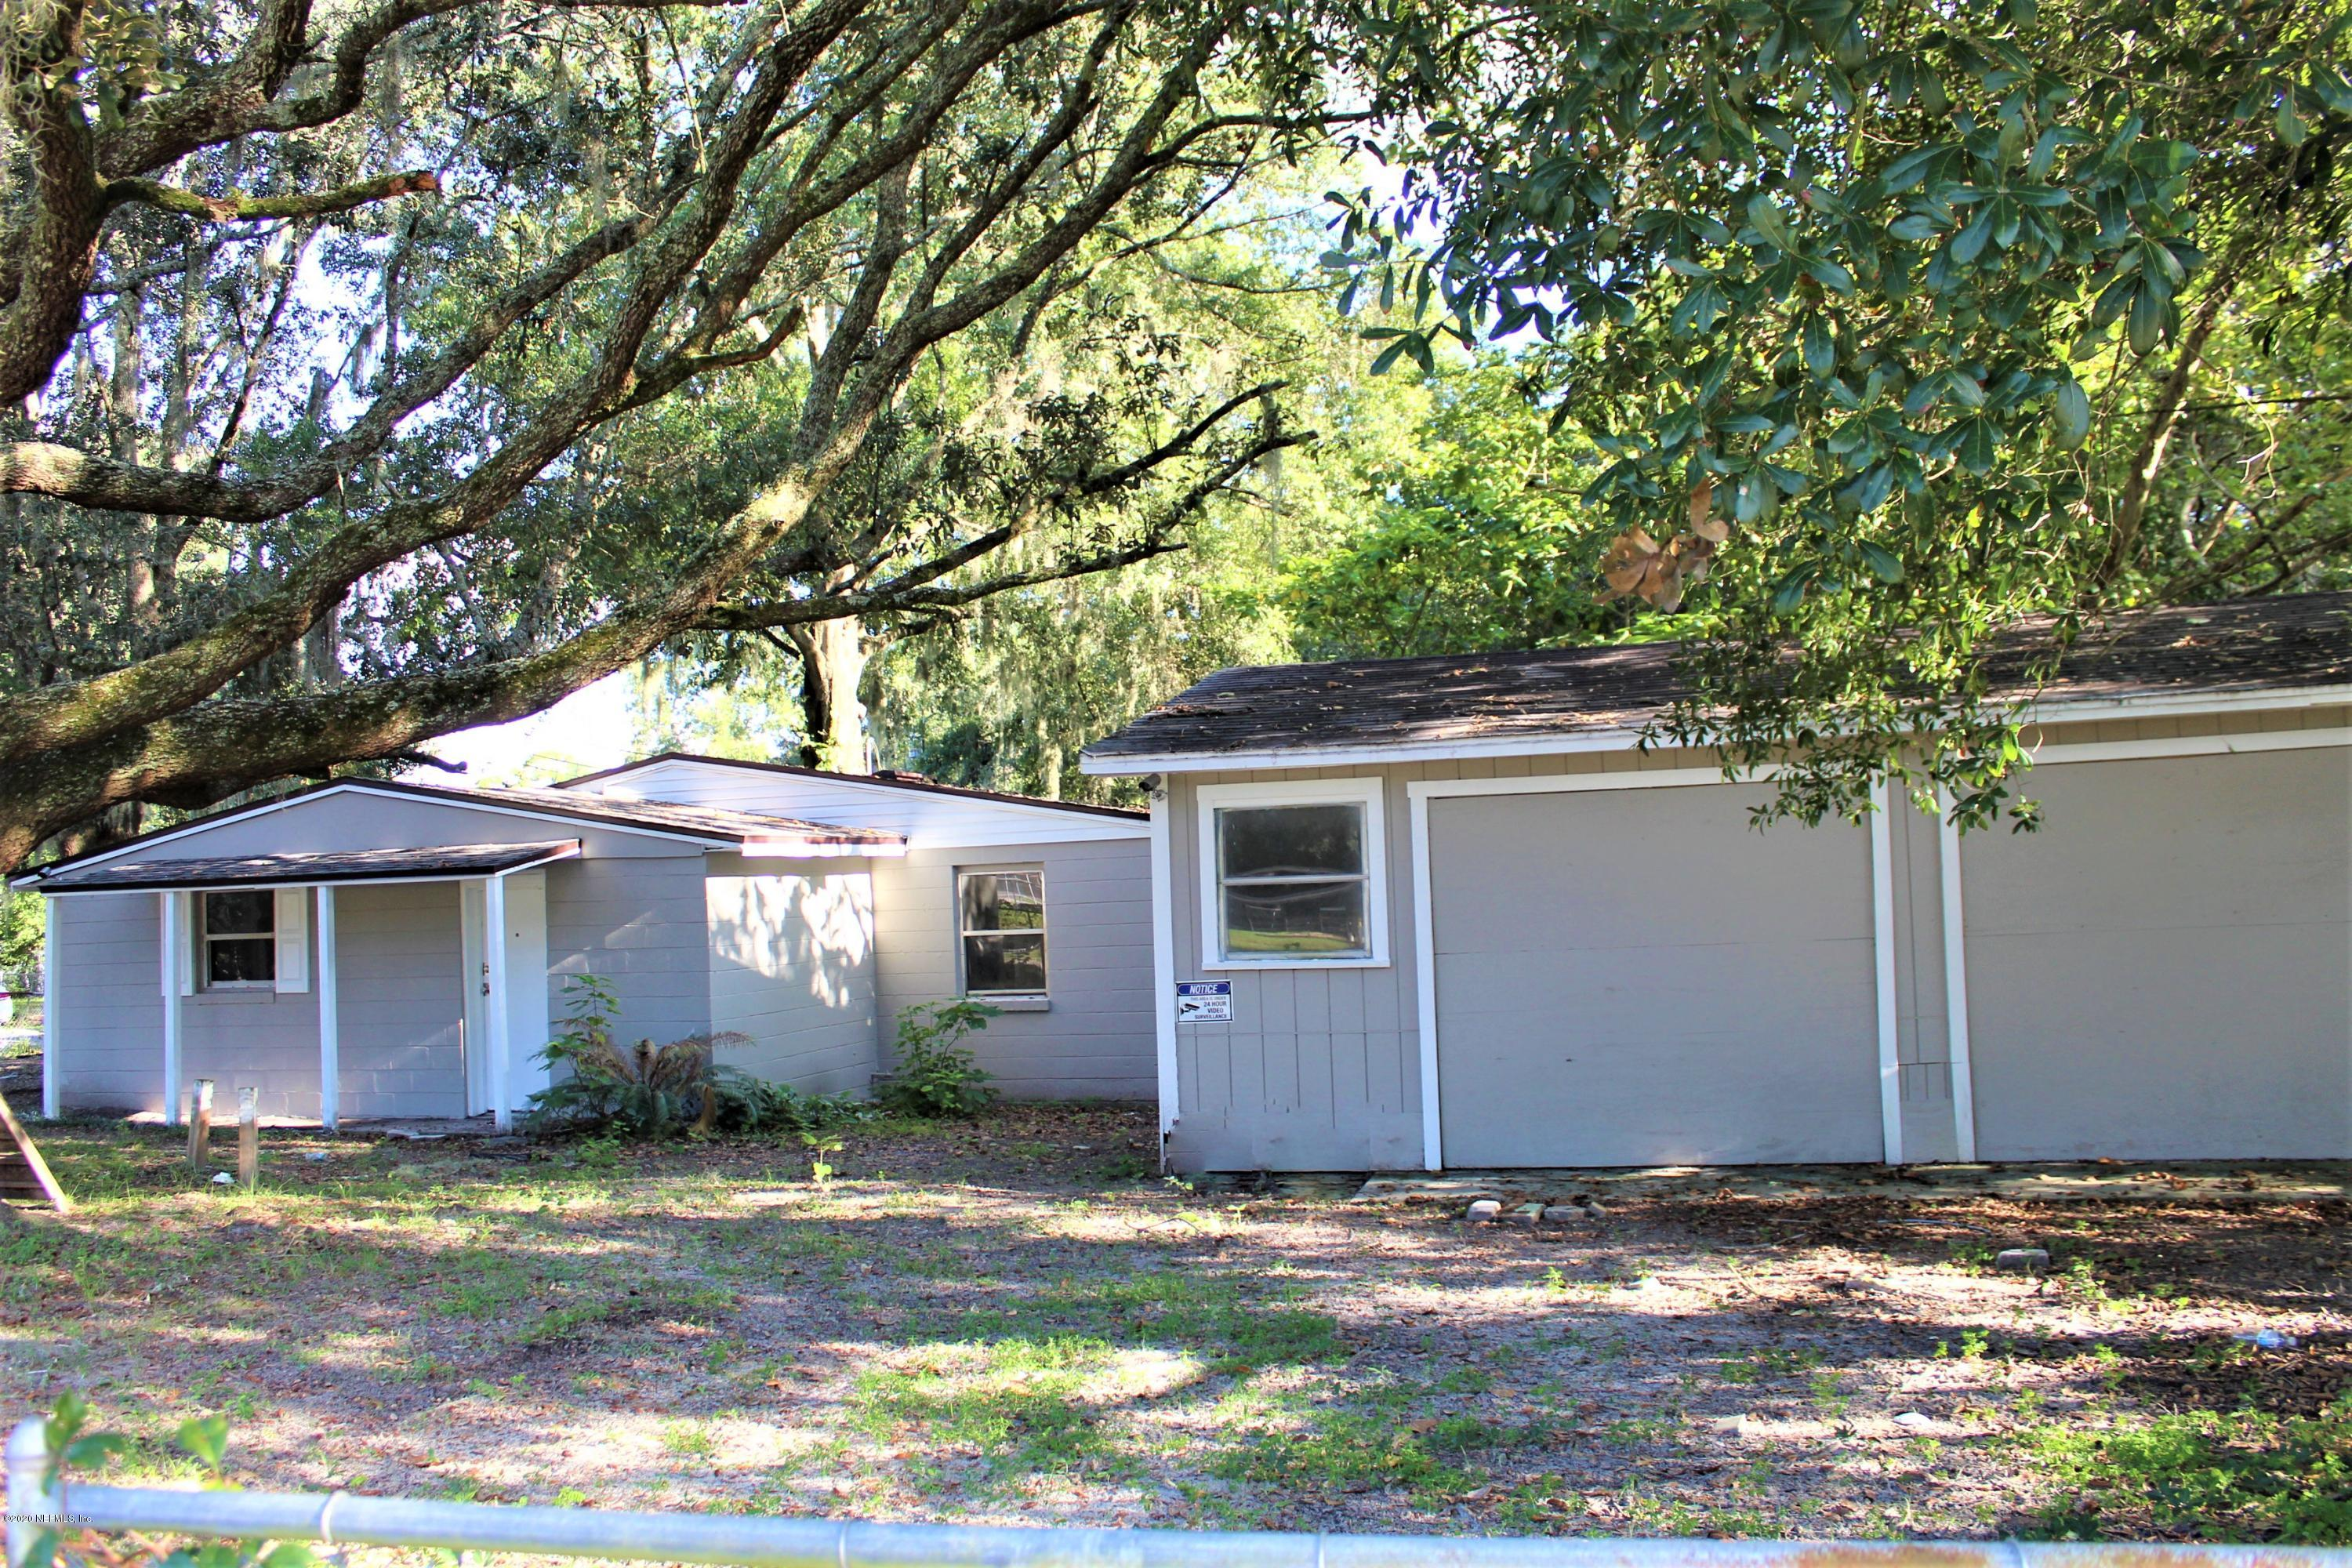 9268 11TH, JACKSONVILLE, FLORIDA 32208, 3 Bedrooms Bedrooms, ,1 BathroomBathrooms,Residential,For sale,11TH,1080750